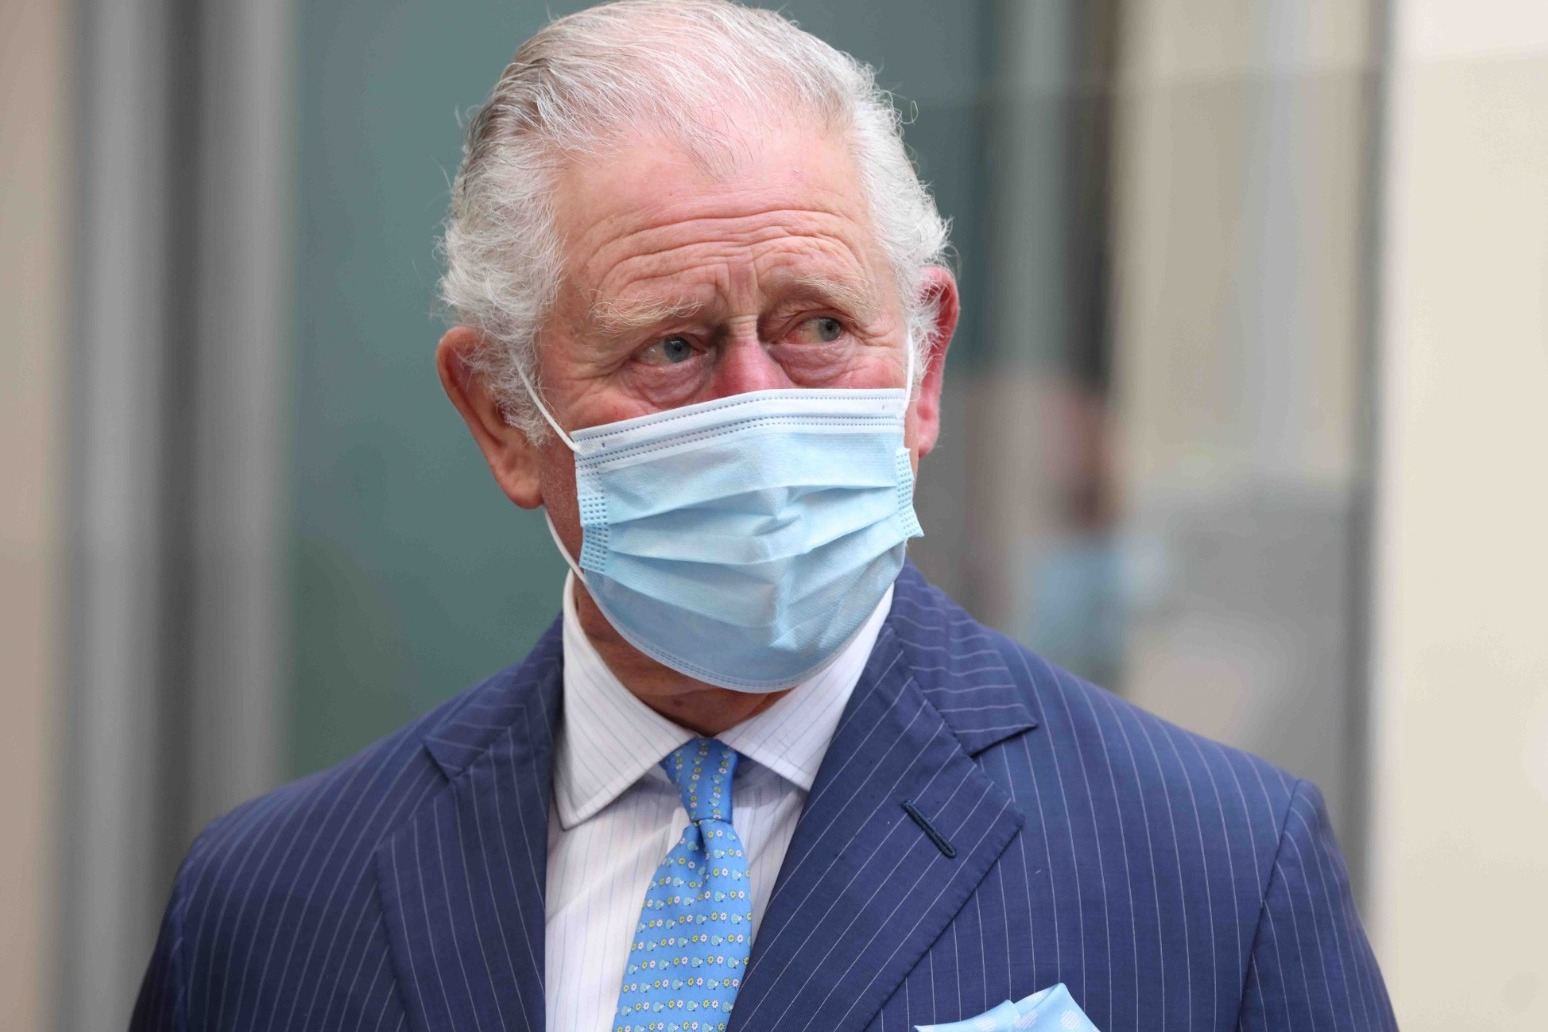 Charles chuckles when asked if he has seen Harry and Meghan interview